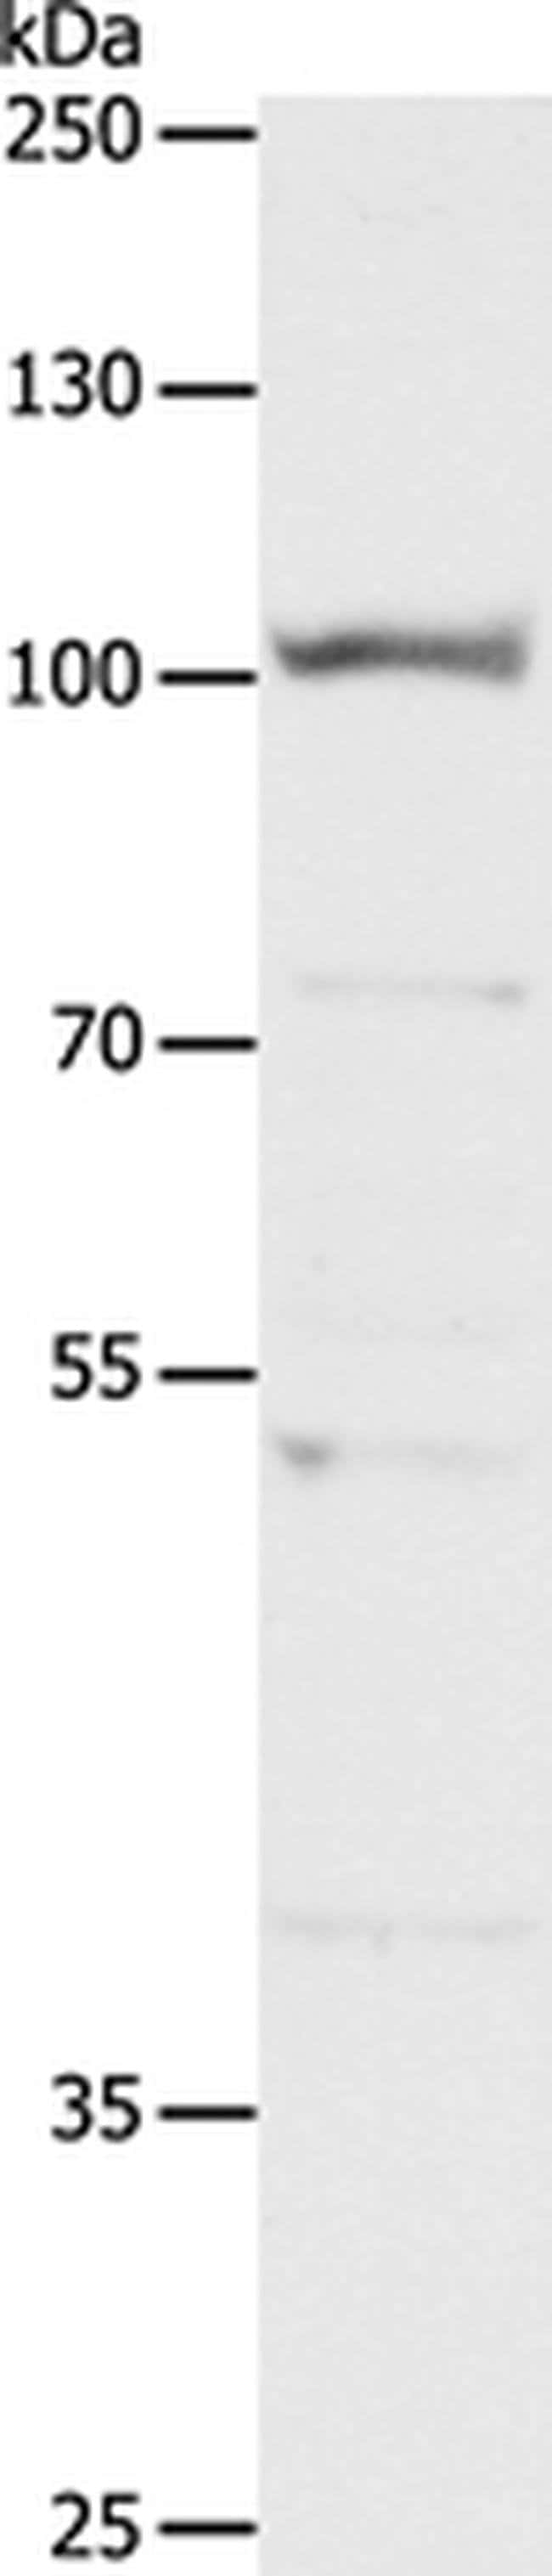 CLCA4 Rabbit anti-Human, Polyclonal, Invitrogen 100 µL; Unconjugated